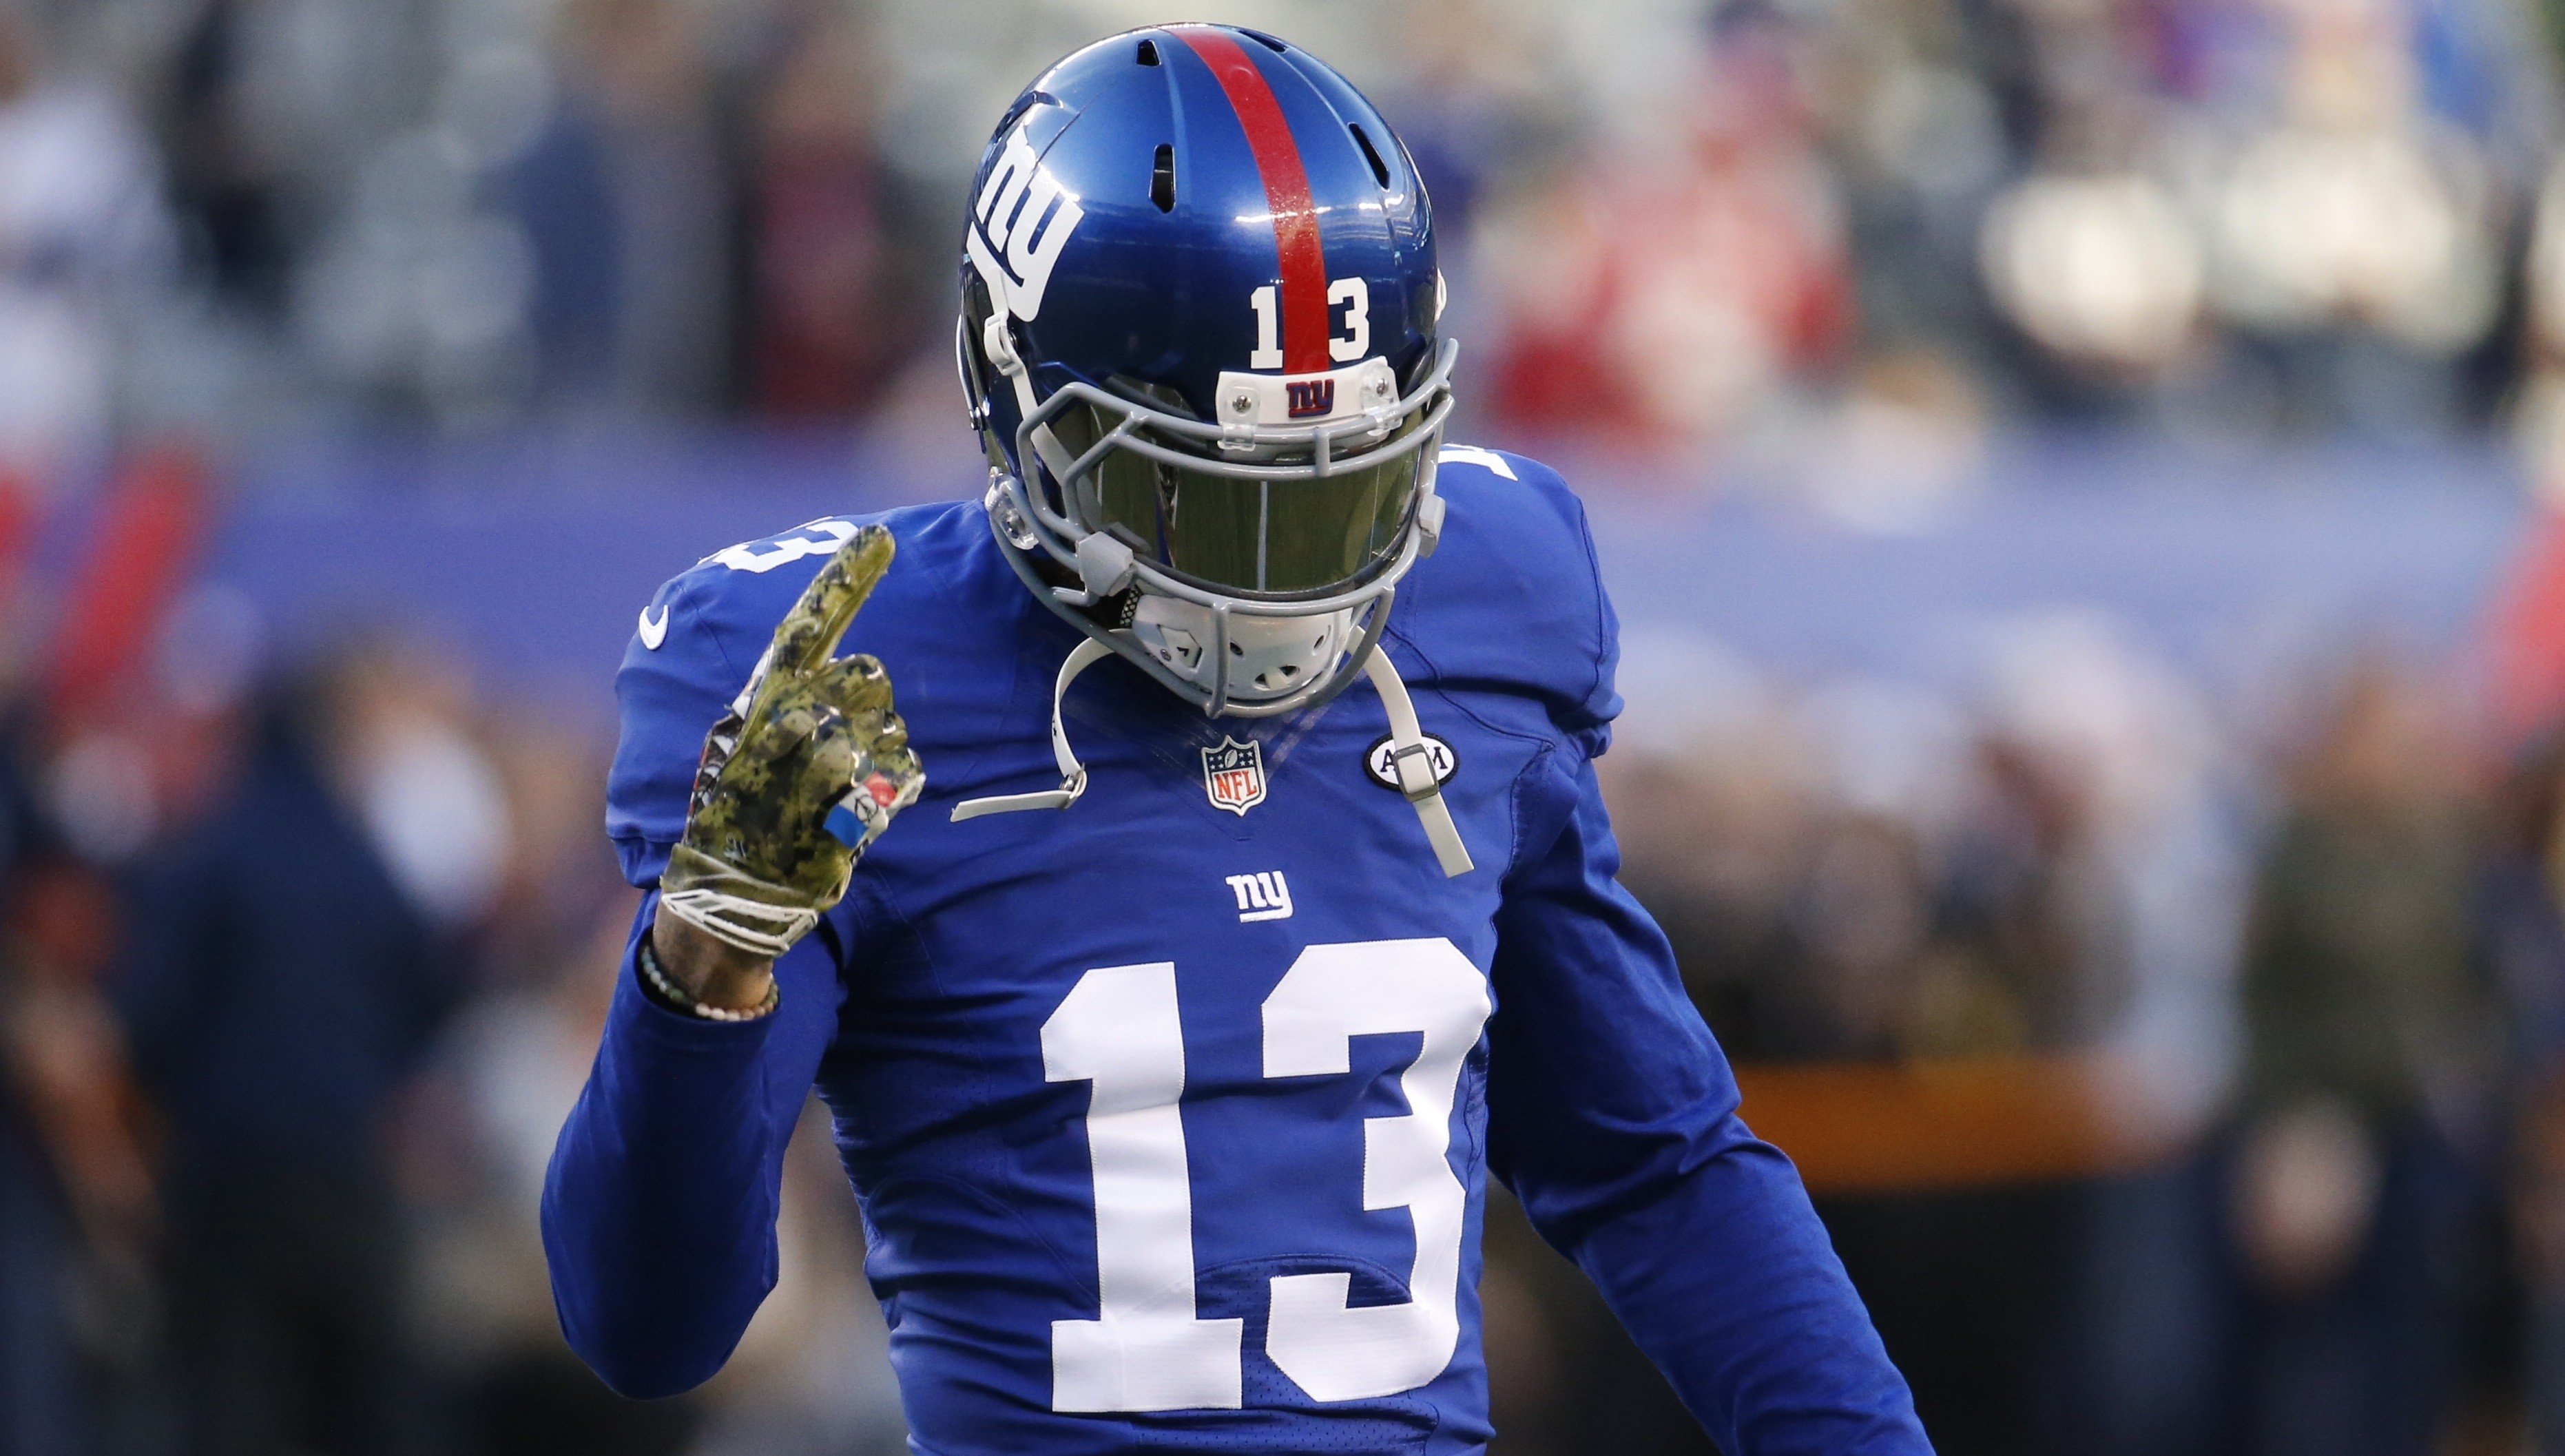 NFC PLAYOFF RACE: New York Giants move closer to playoff berth with 17-6  win over Detroit Lions